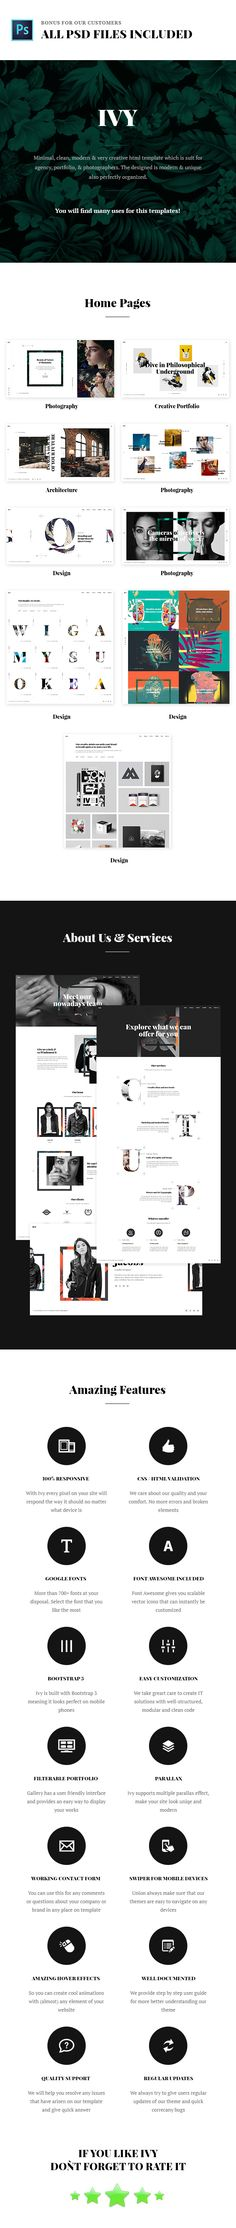 Ivy - Uniqe and Creative Photography/Portfolio/Agency HTML Template #agency #architecture #company • Download ➝ https://themeforest.net/item/ivy-uniqe-and-creative-photographyportfolioagency-html-template/19065708?ref=pxcr